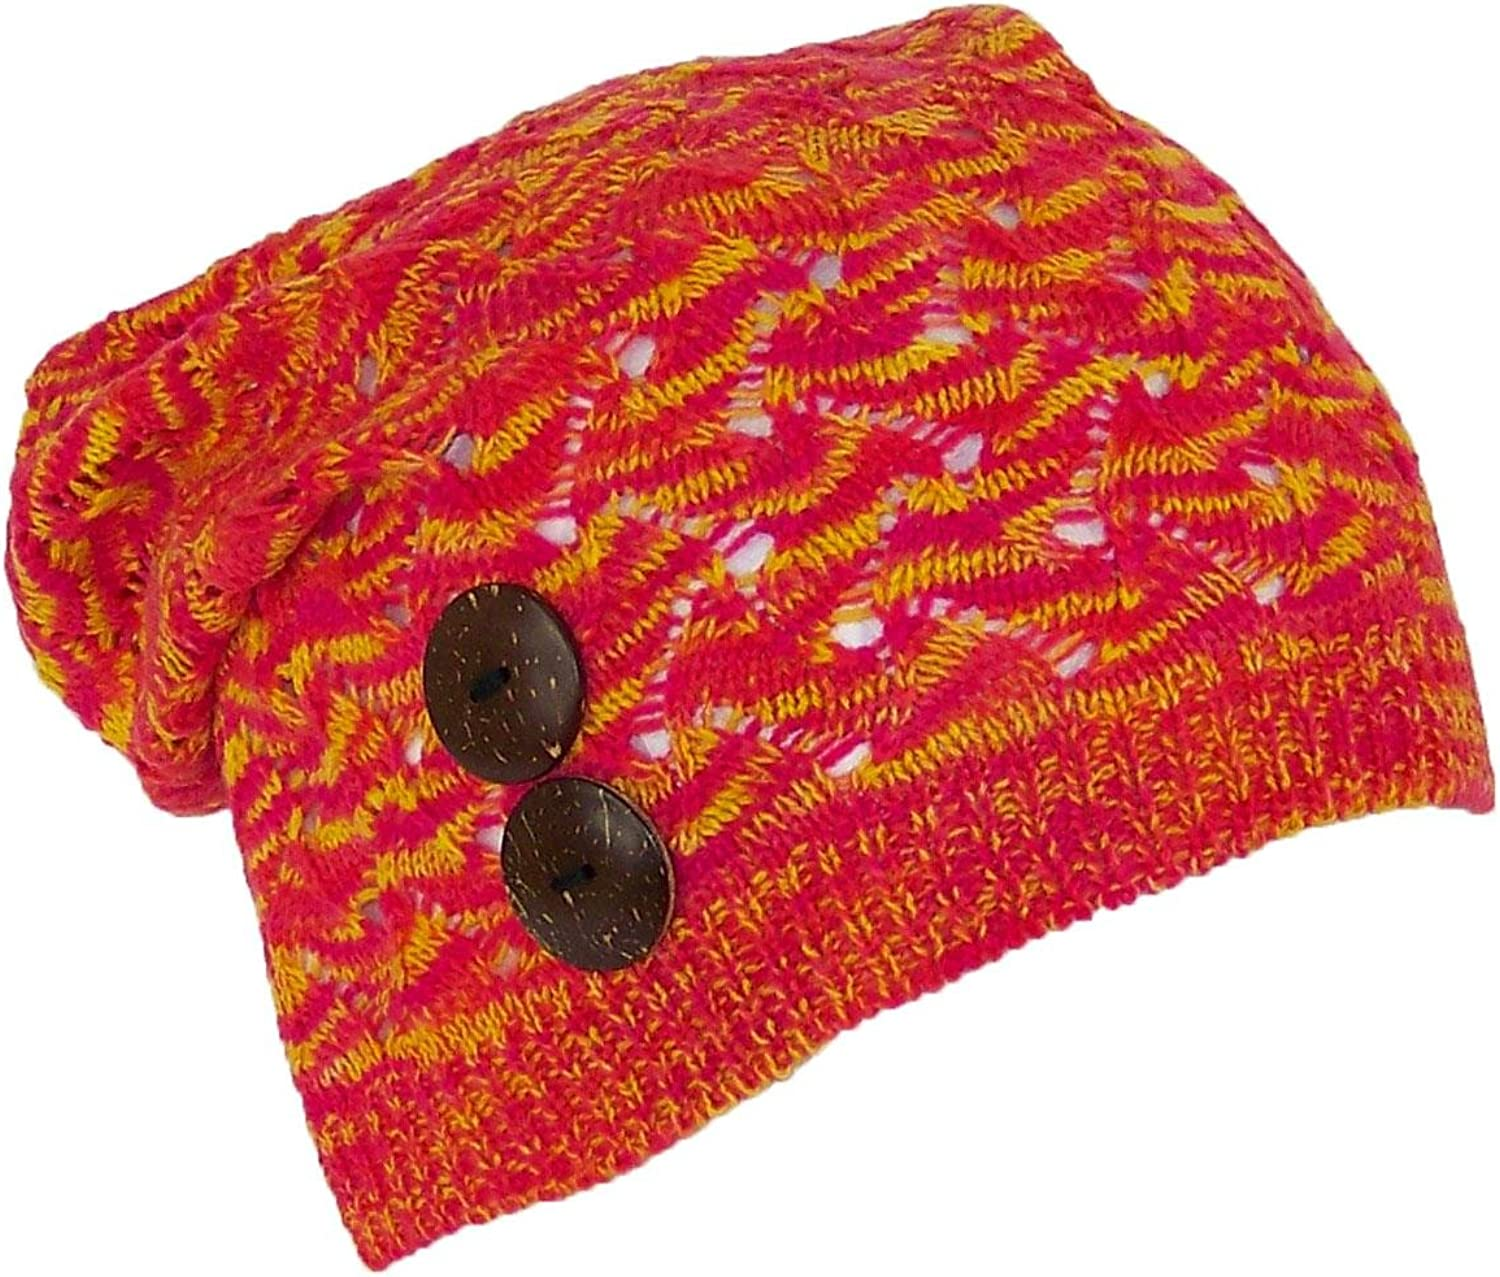 D&Y Women's Loose Knit Variegated Lightweight Skull Cap W 2 Buttons (One Size)